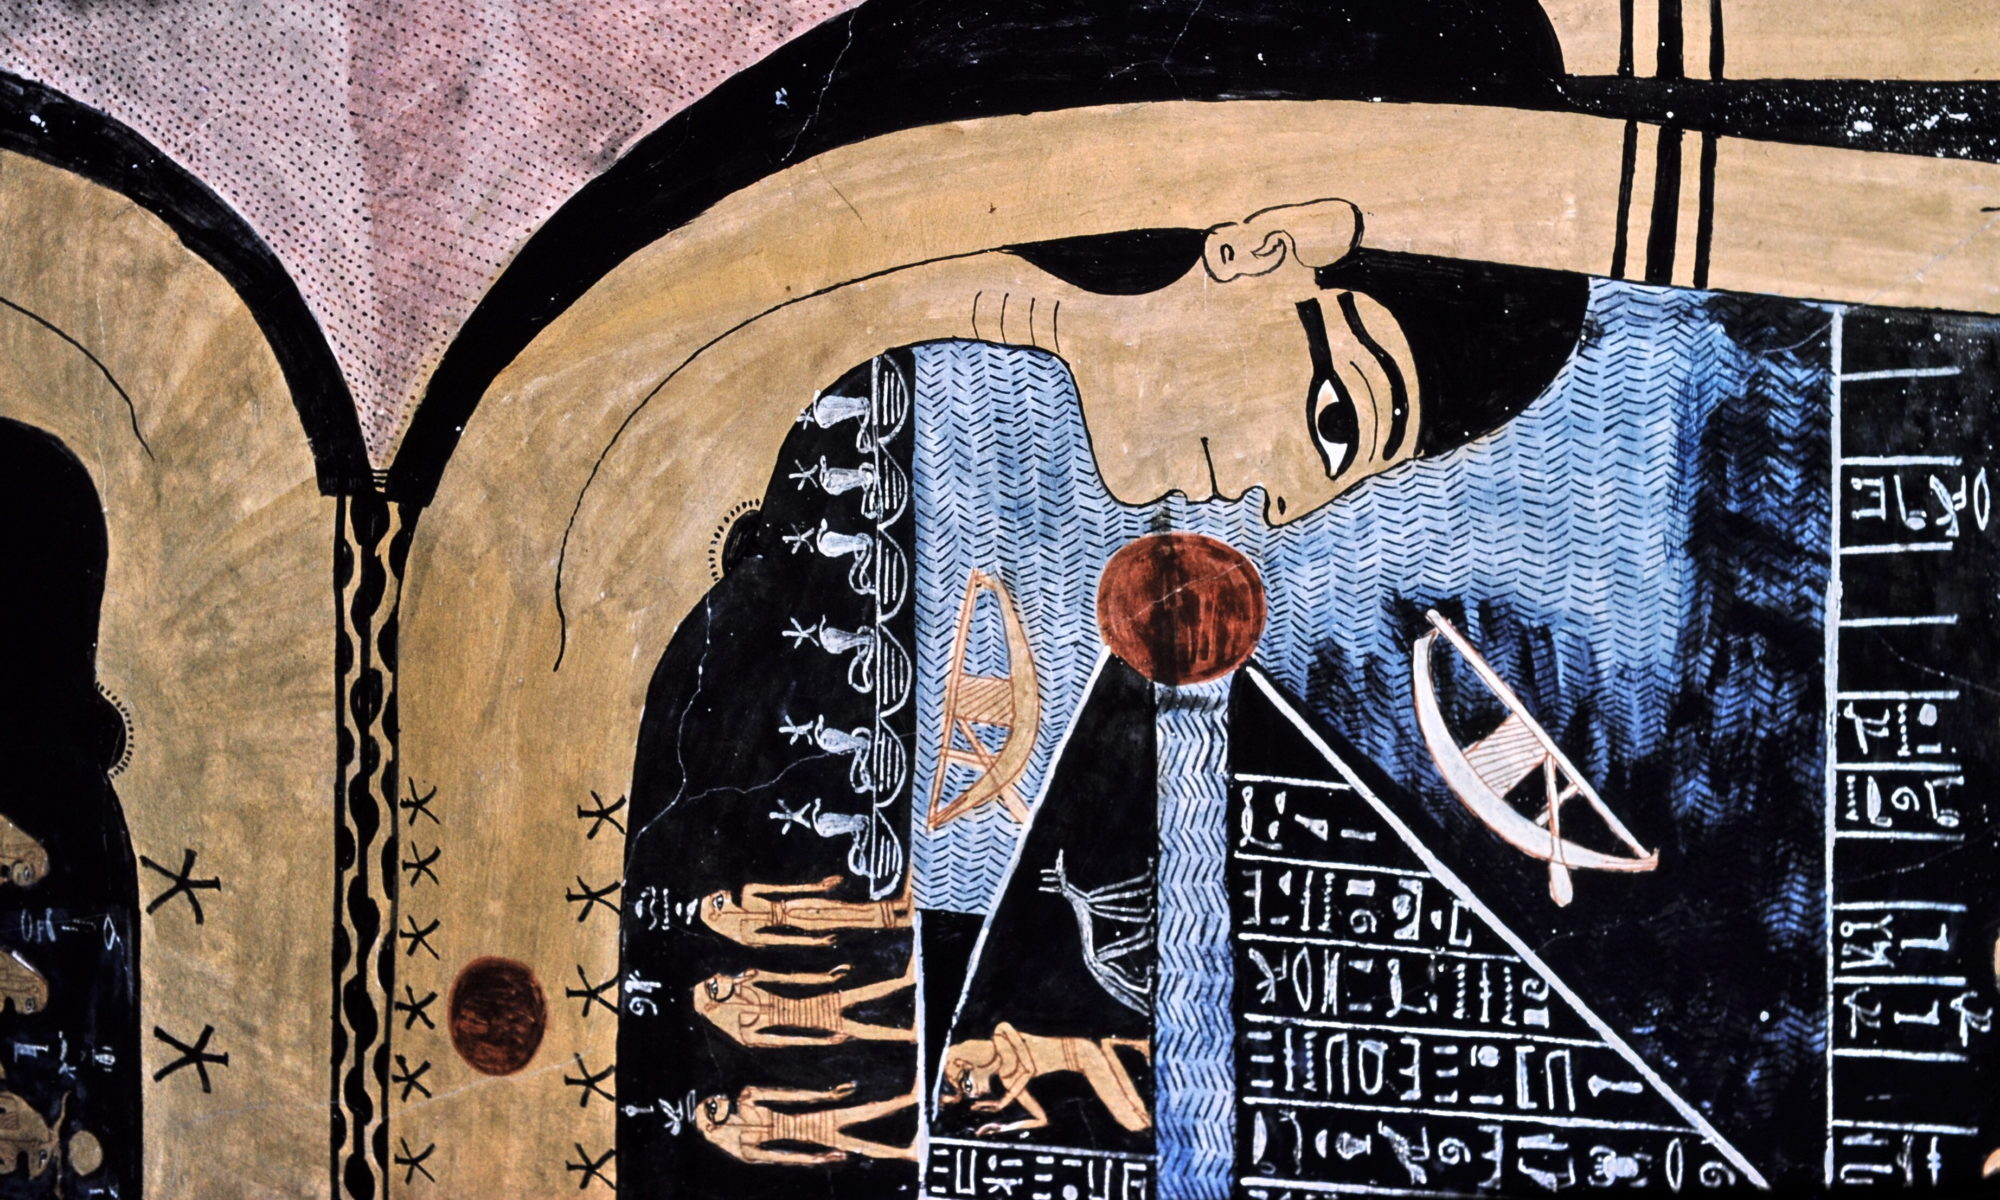 Photograph of Nut in the tomb of Ramses VI by Hans Bernhard